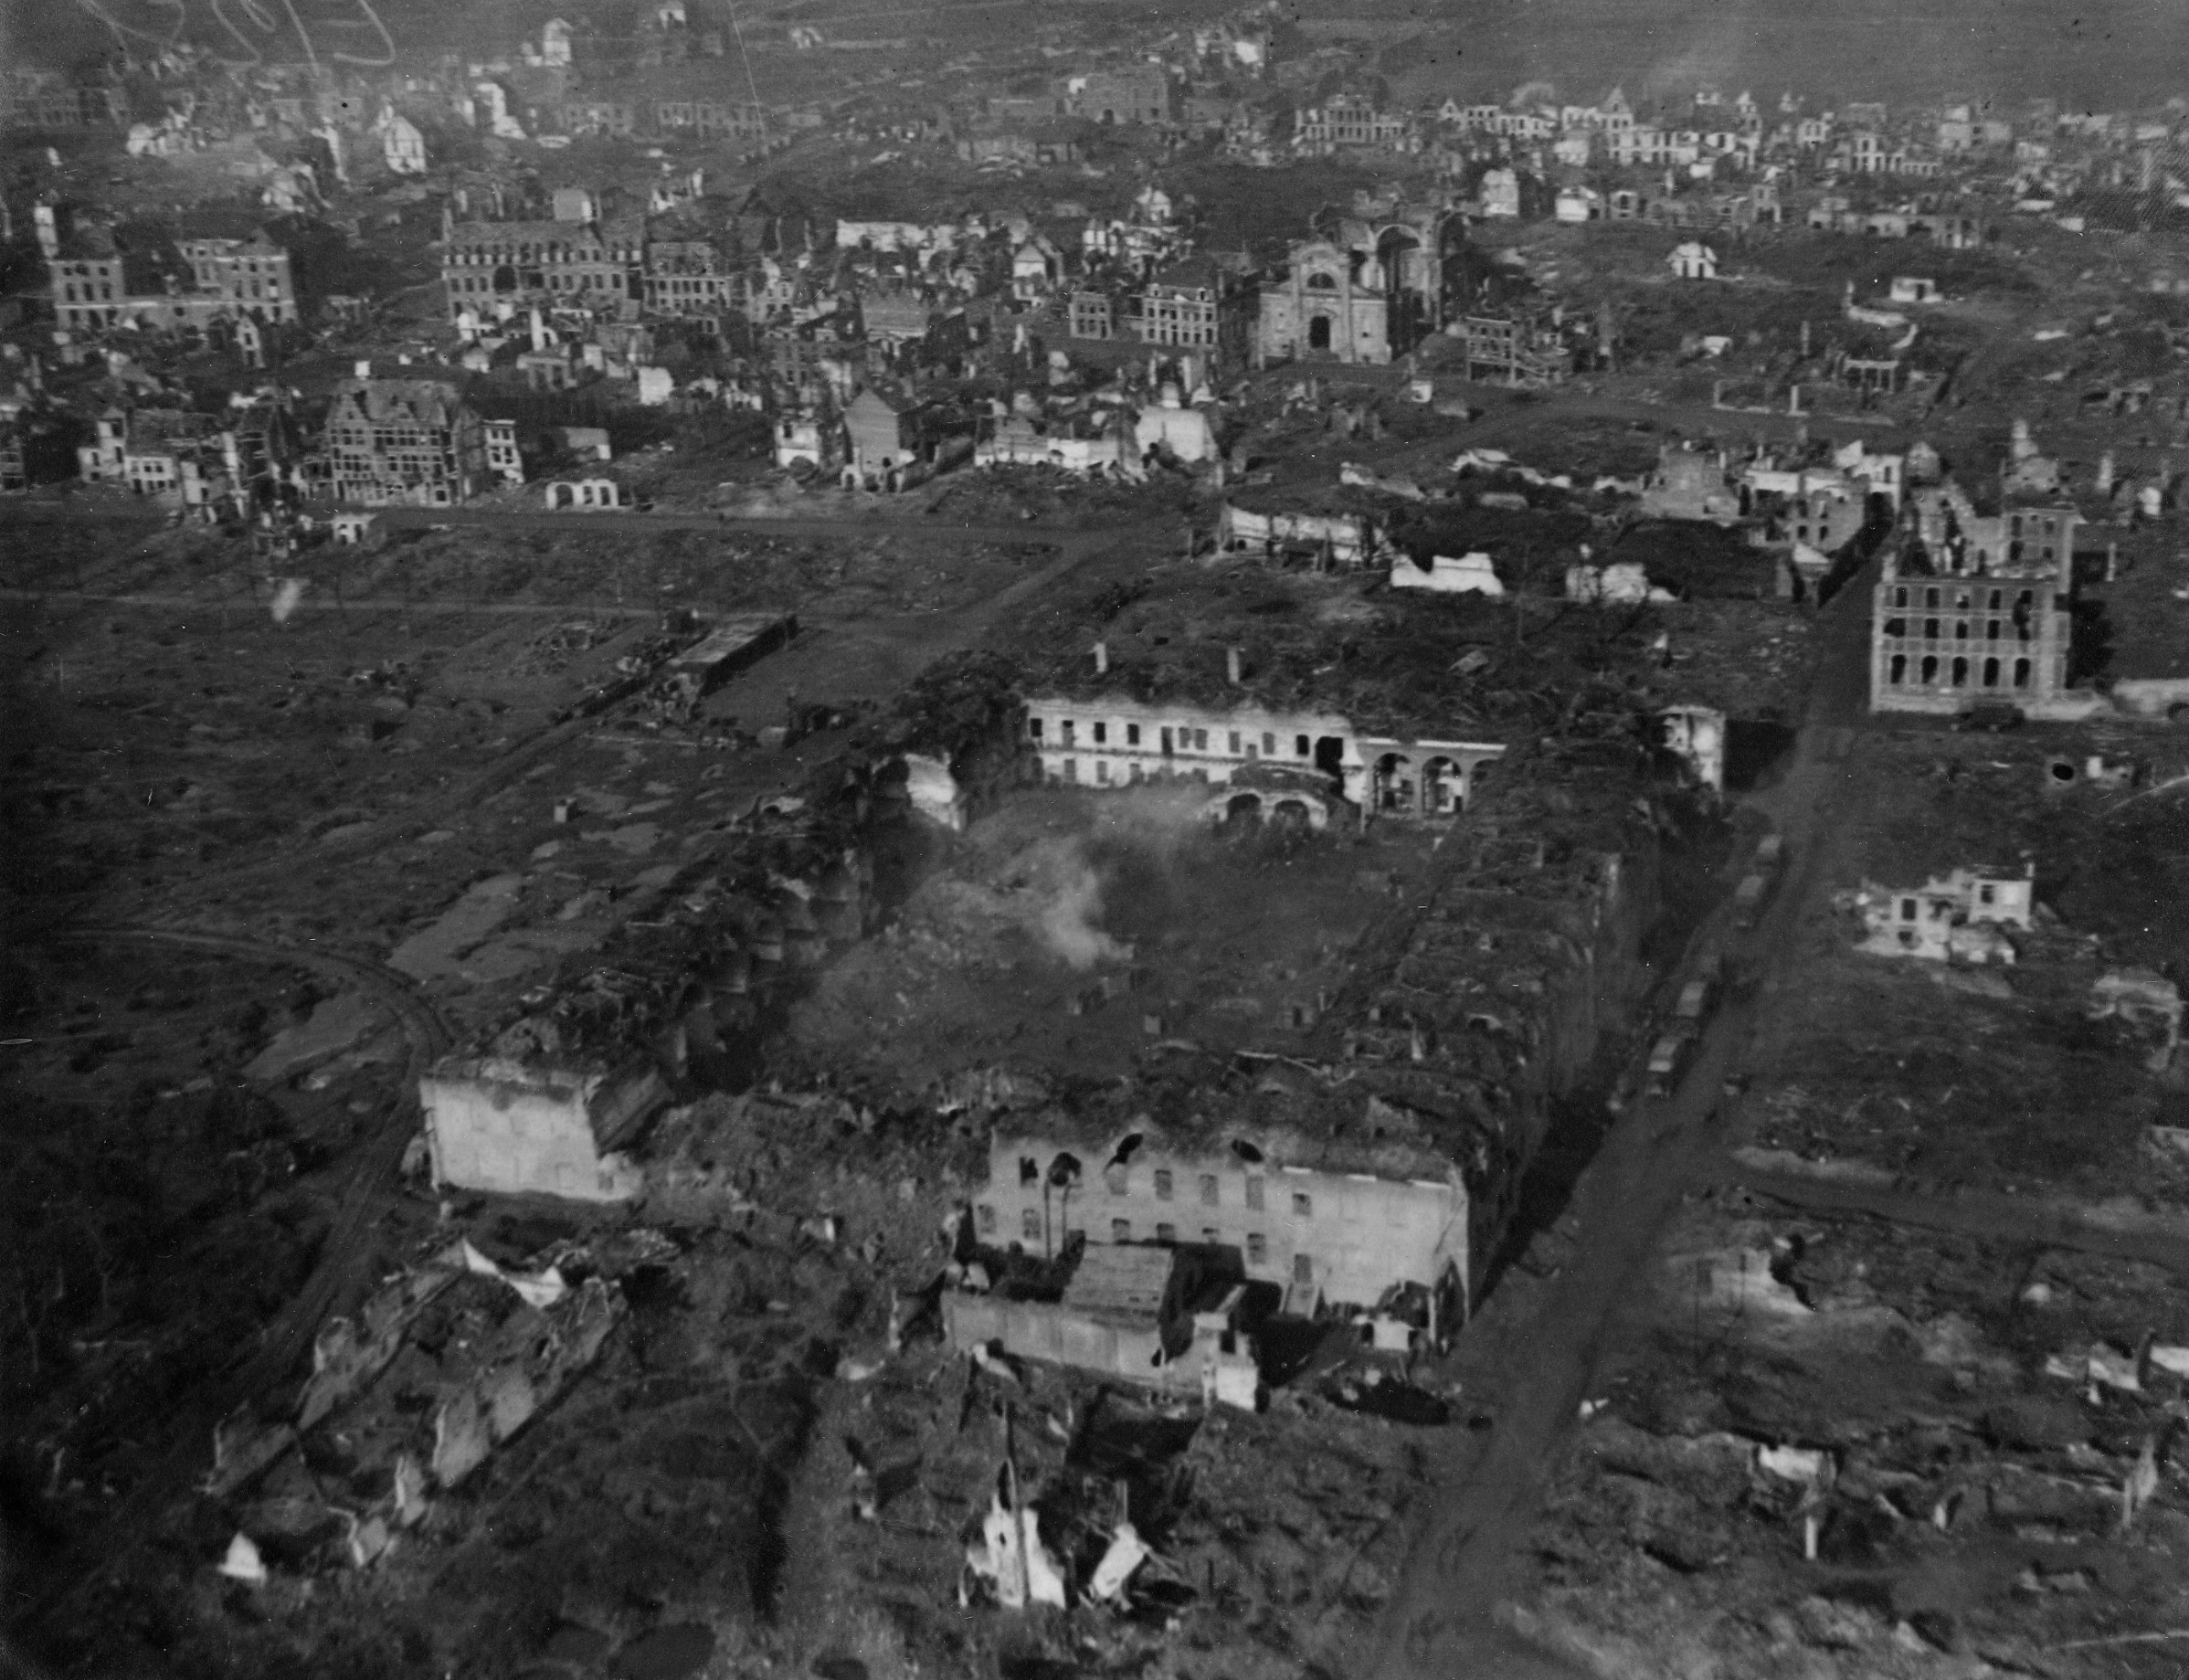 The ruins of Ypres, in Belgium, viewed from an observation balloon. In the centre of the picture can be seen the old Cavalry Barracks, at this time being used as billets by the 1st Division.